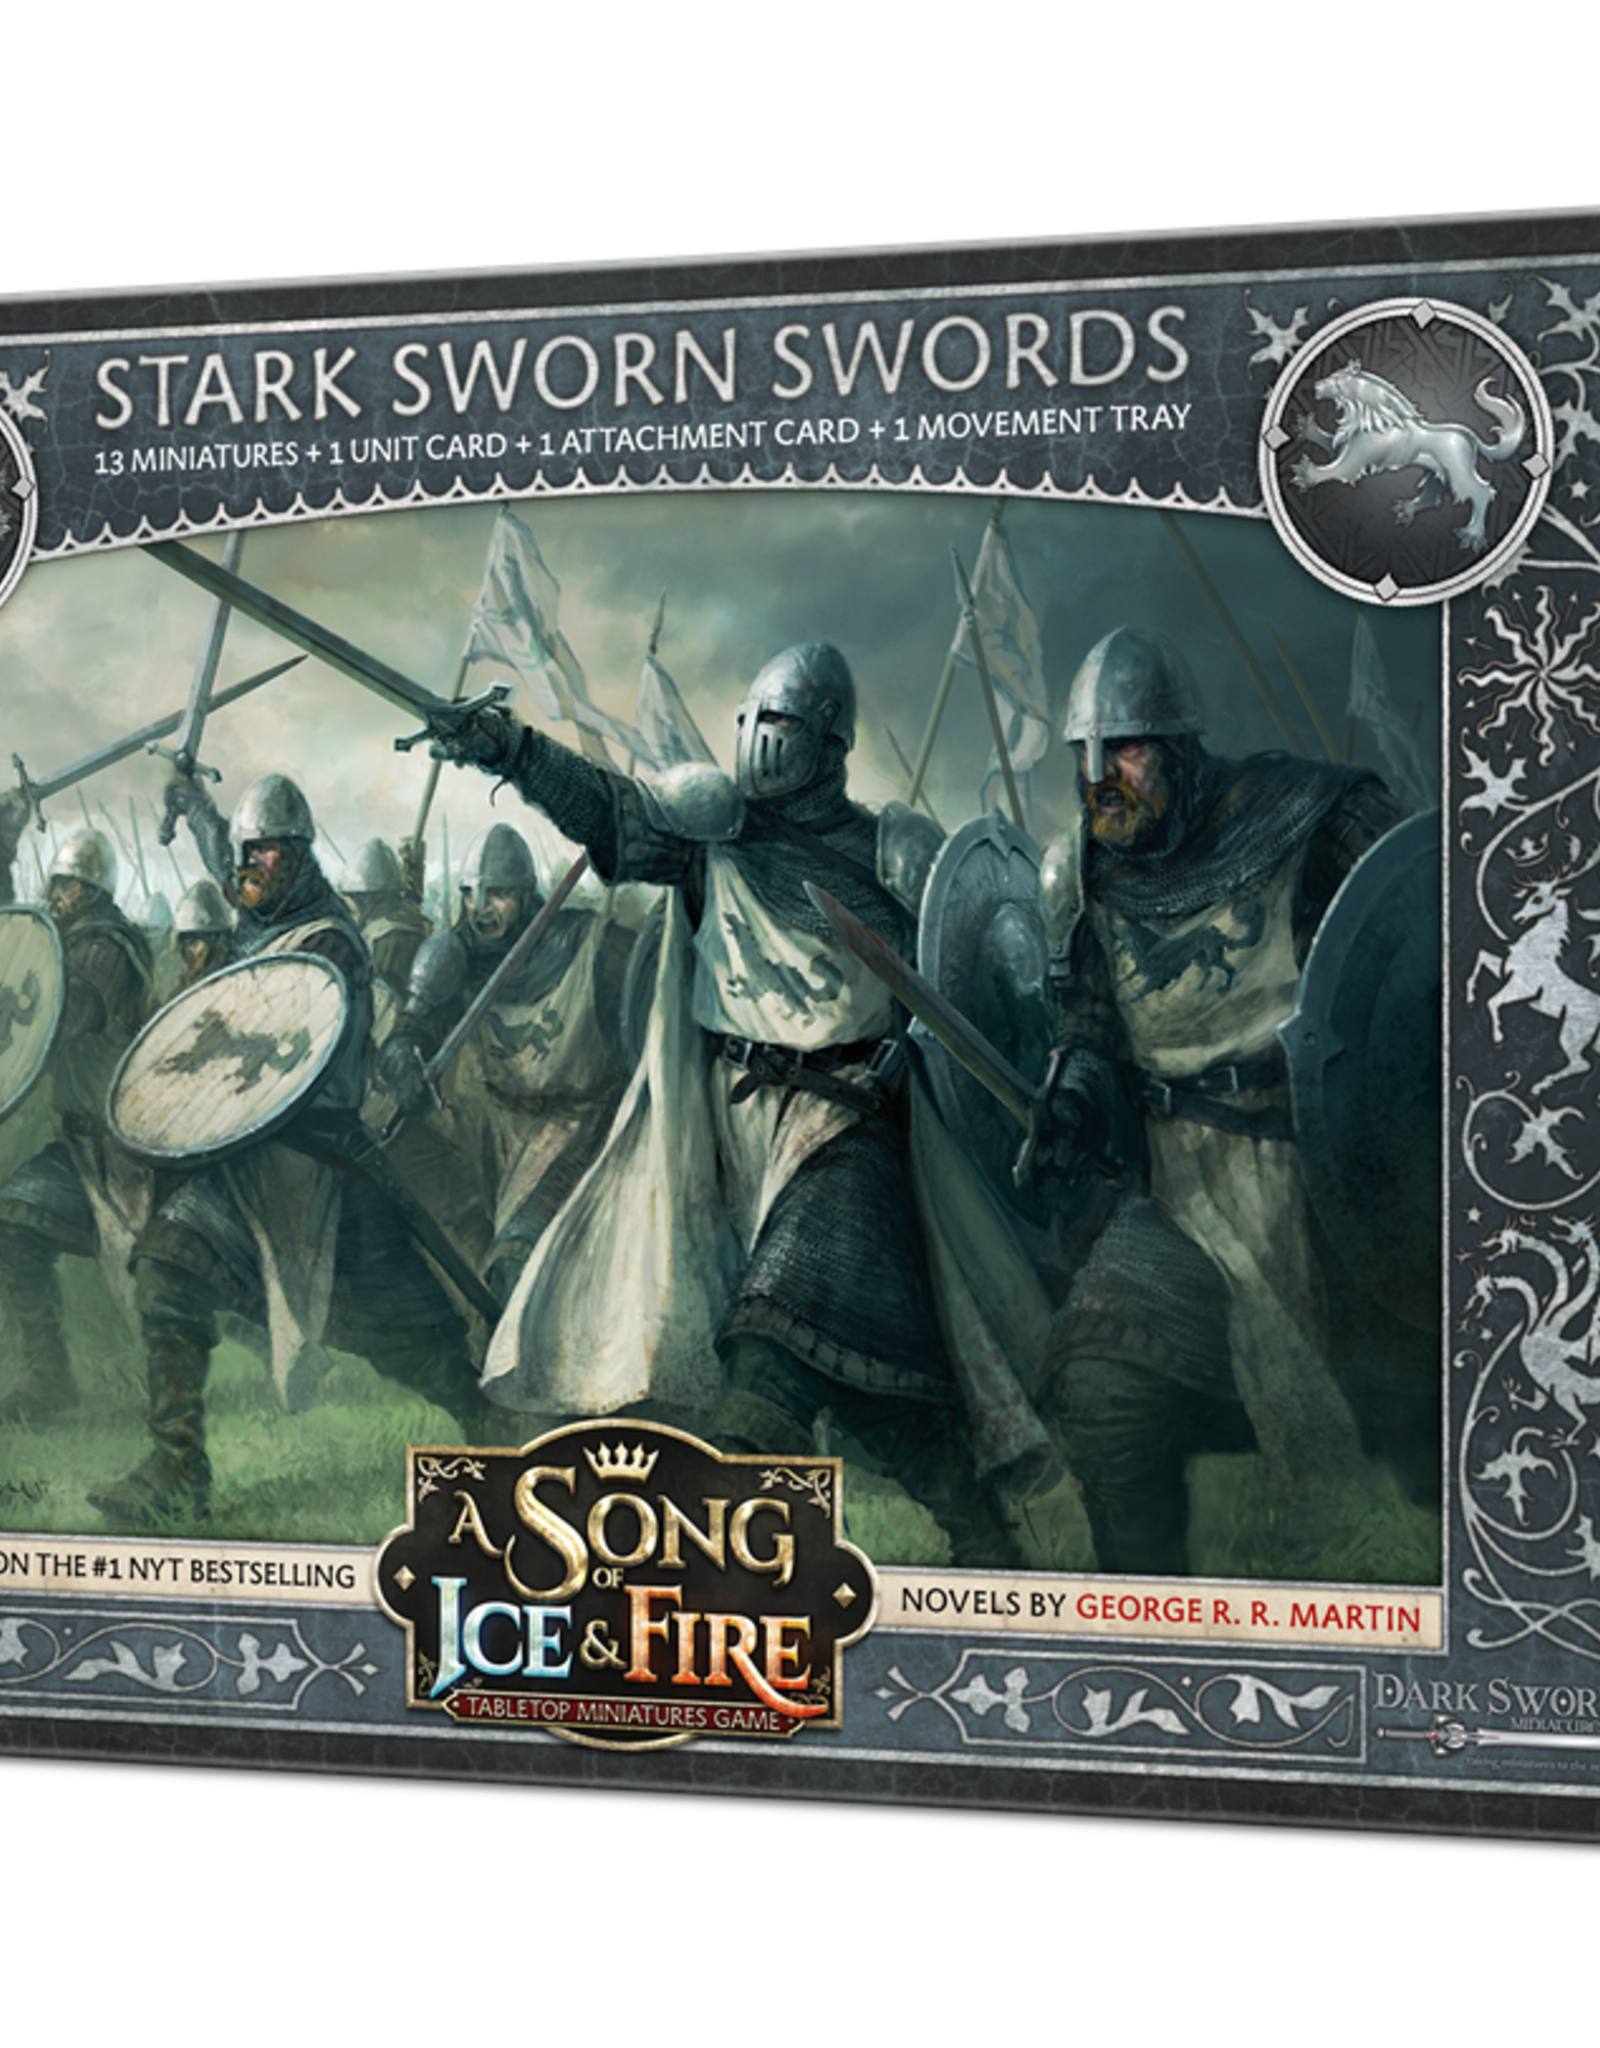 Cool Mini or Not A Song of Ice and Fire Stark Sworn Swords